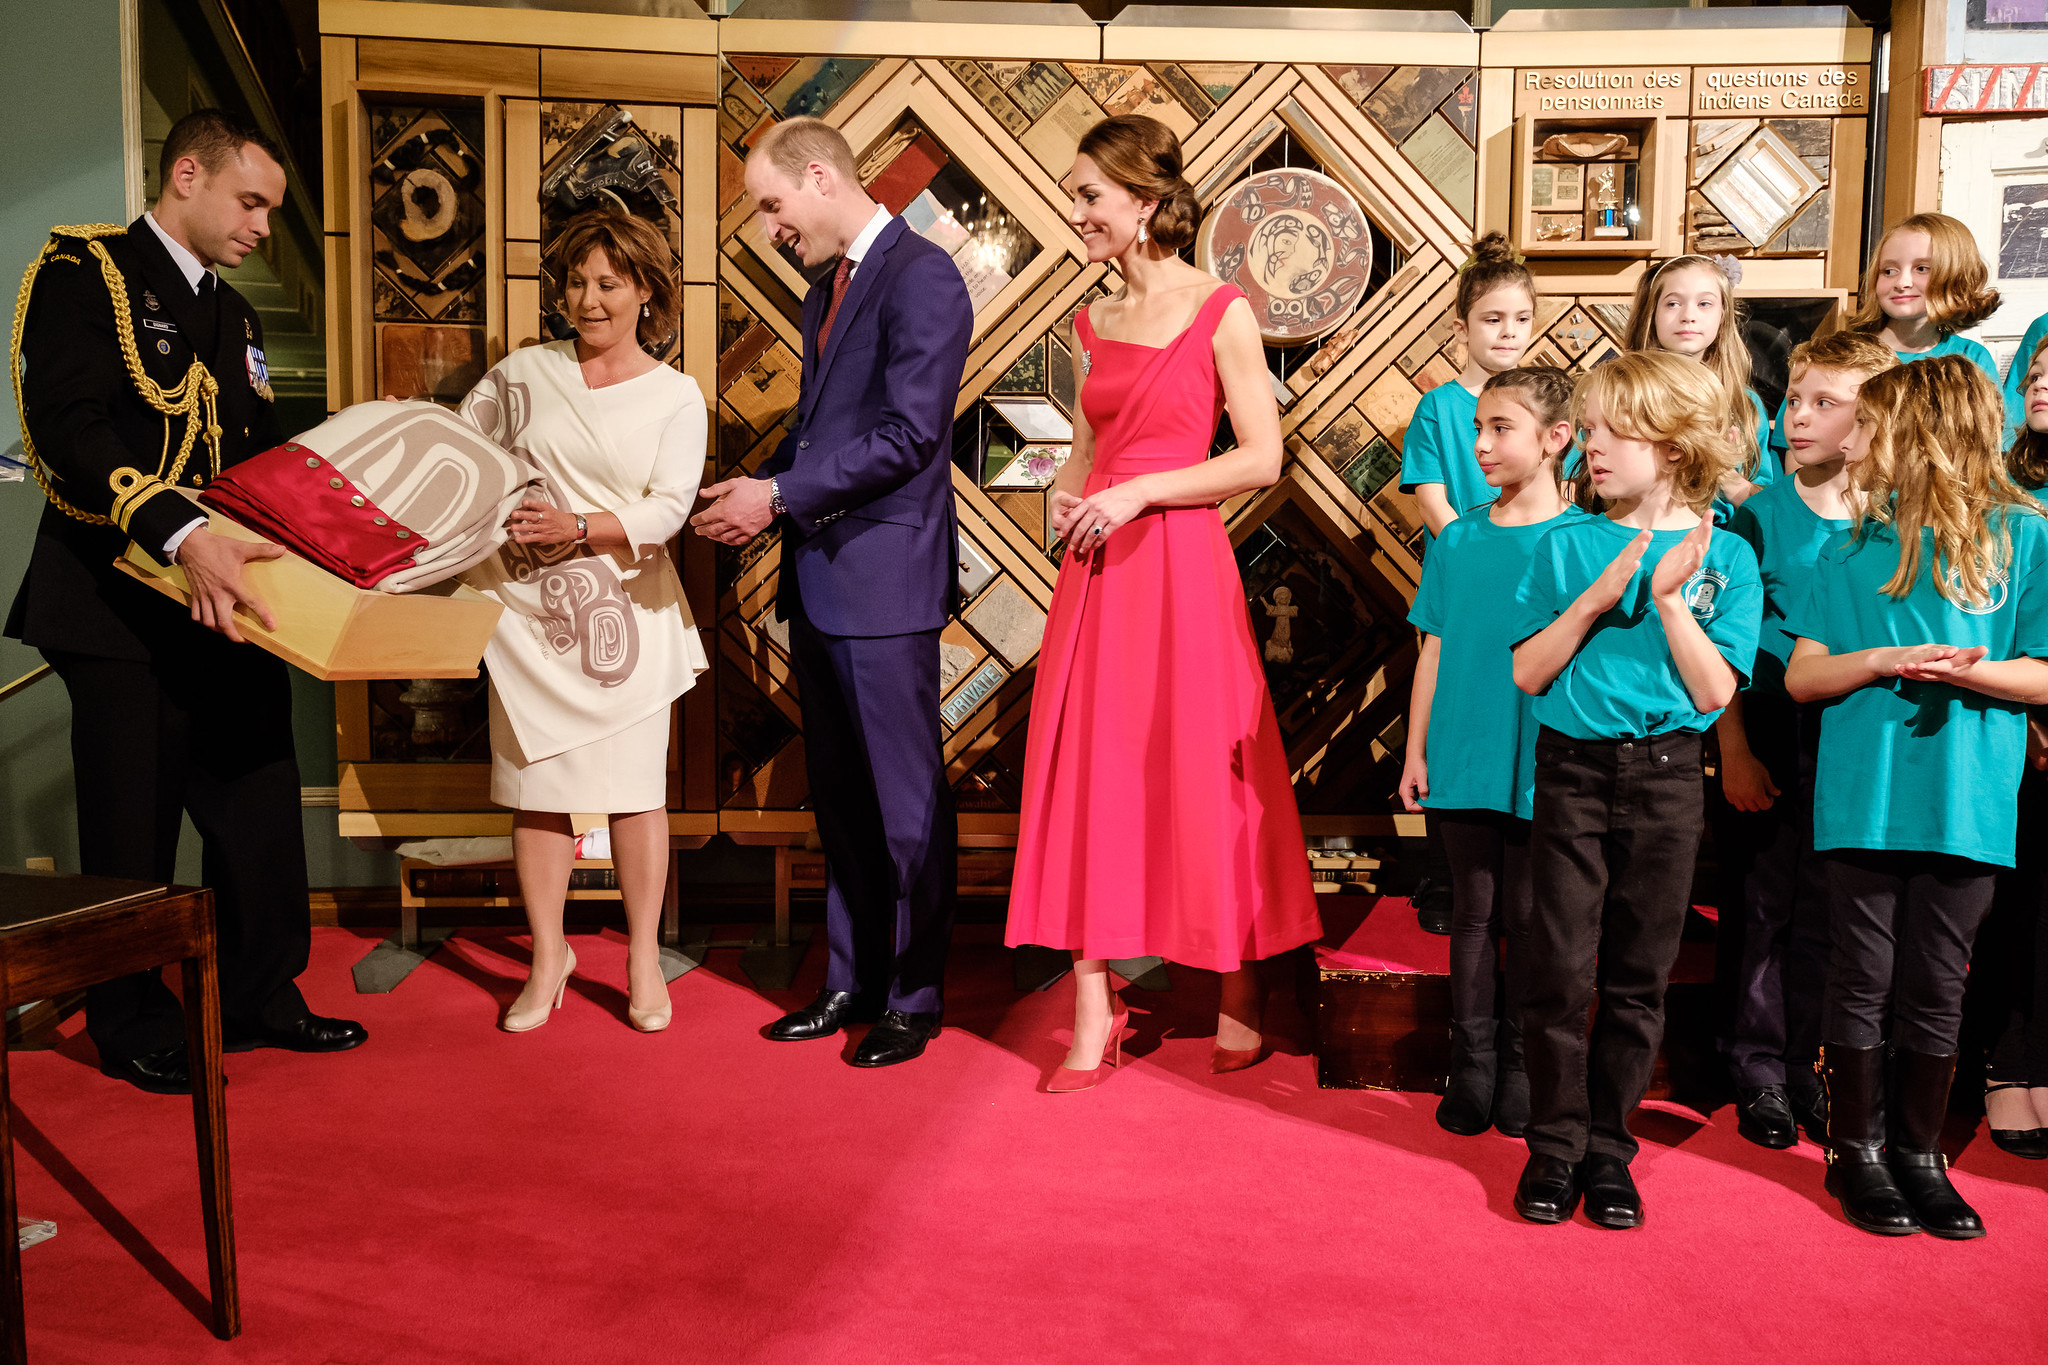 Government House reception during the #RoyalTour